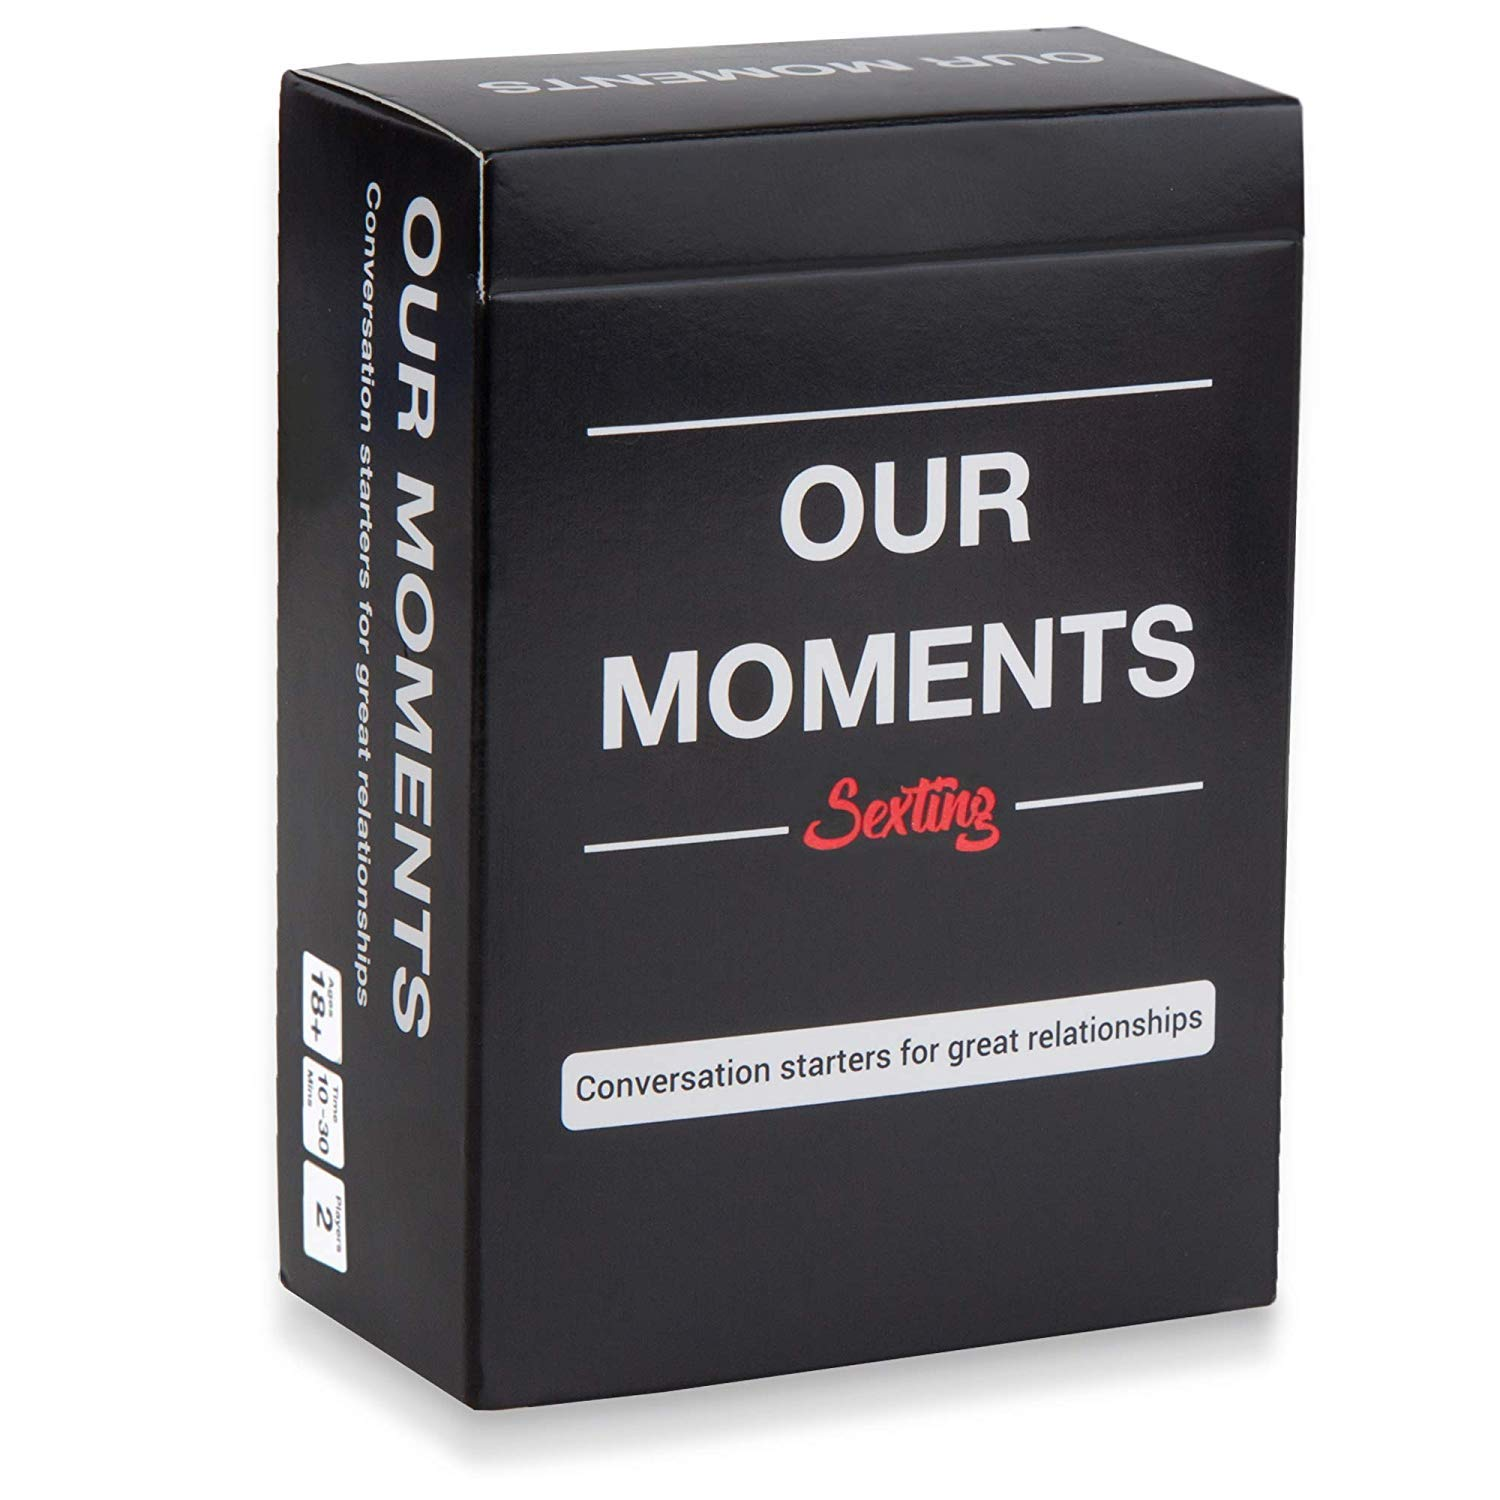 OUR MOMENTS Sexting: 100 Messages to Text to Your Partner to Spice Up Your Relationship with Fun Conversation Cards Game for Couples by OUR MOMENTS